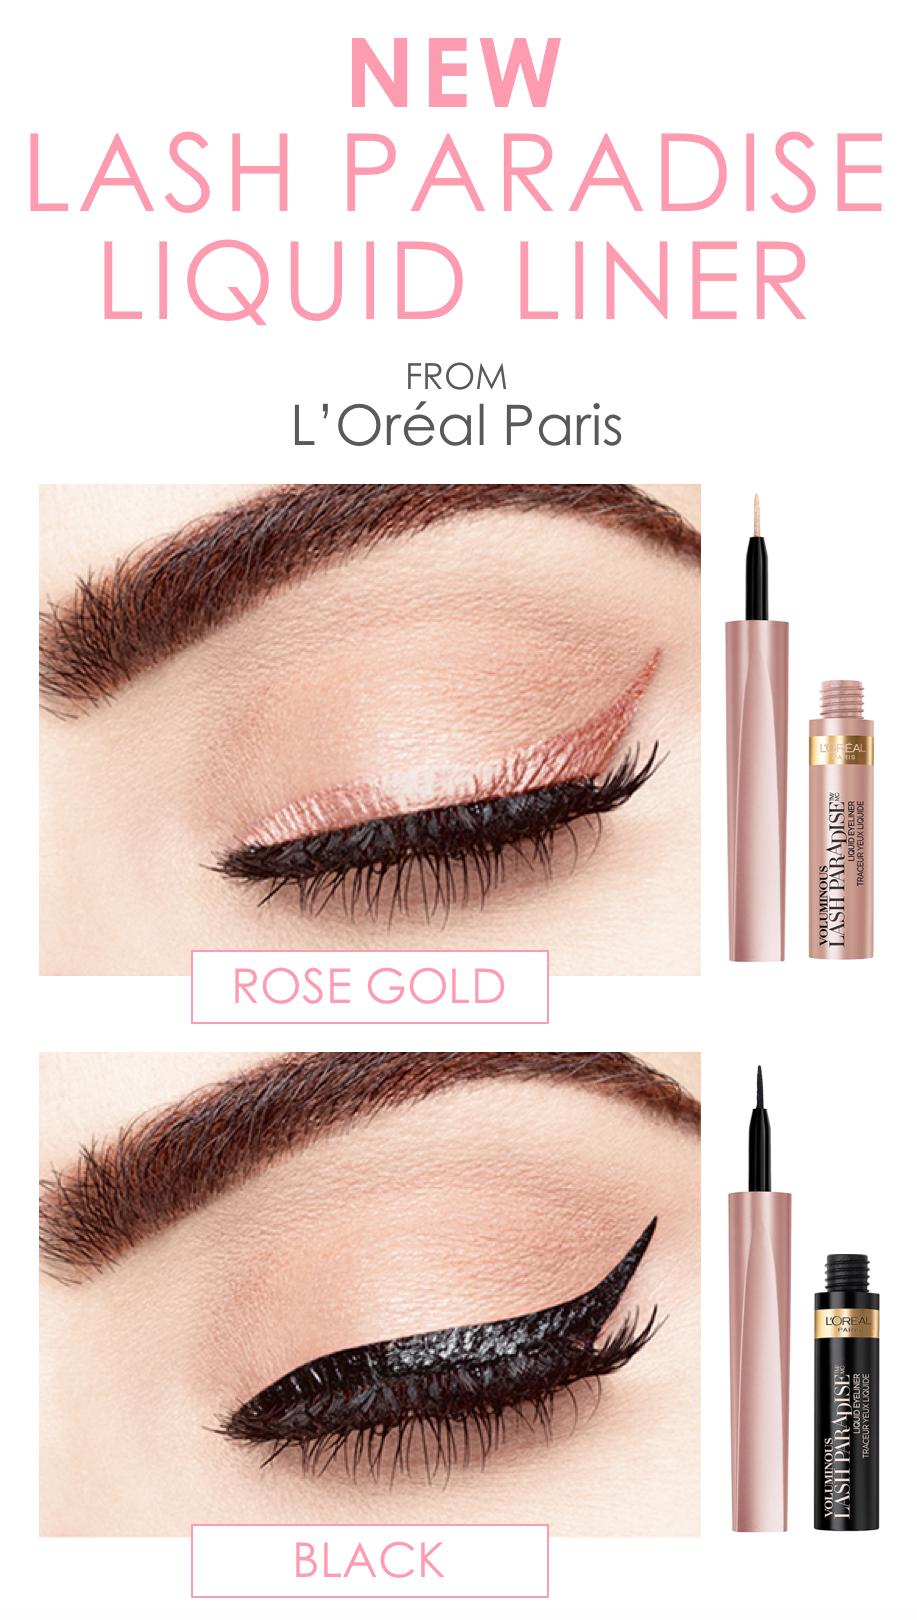 14c200682a7 New Lash Paradise Liquid eye liner from L'Oreal Paris. Now available in 2  shades: Rose Gold and Black.